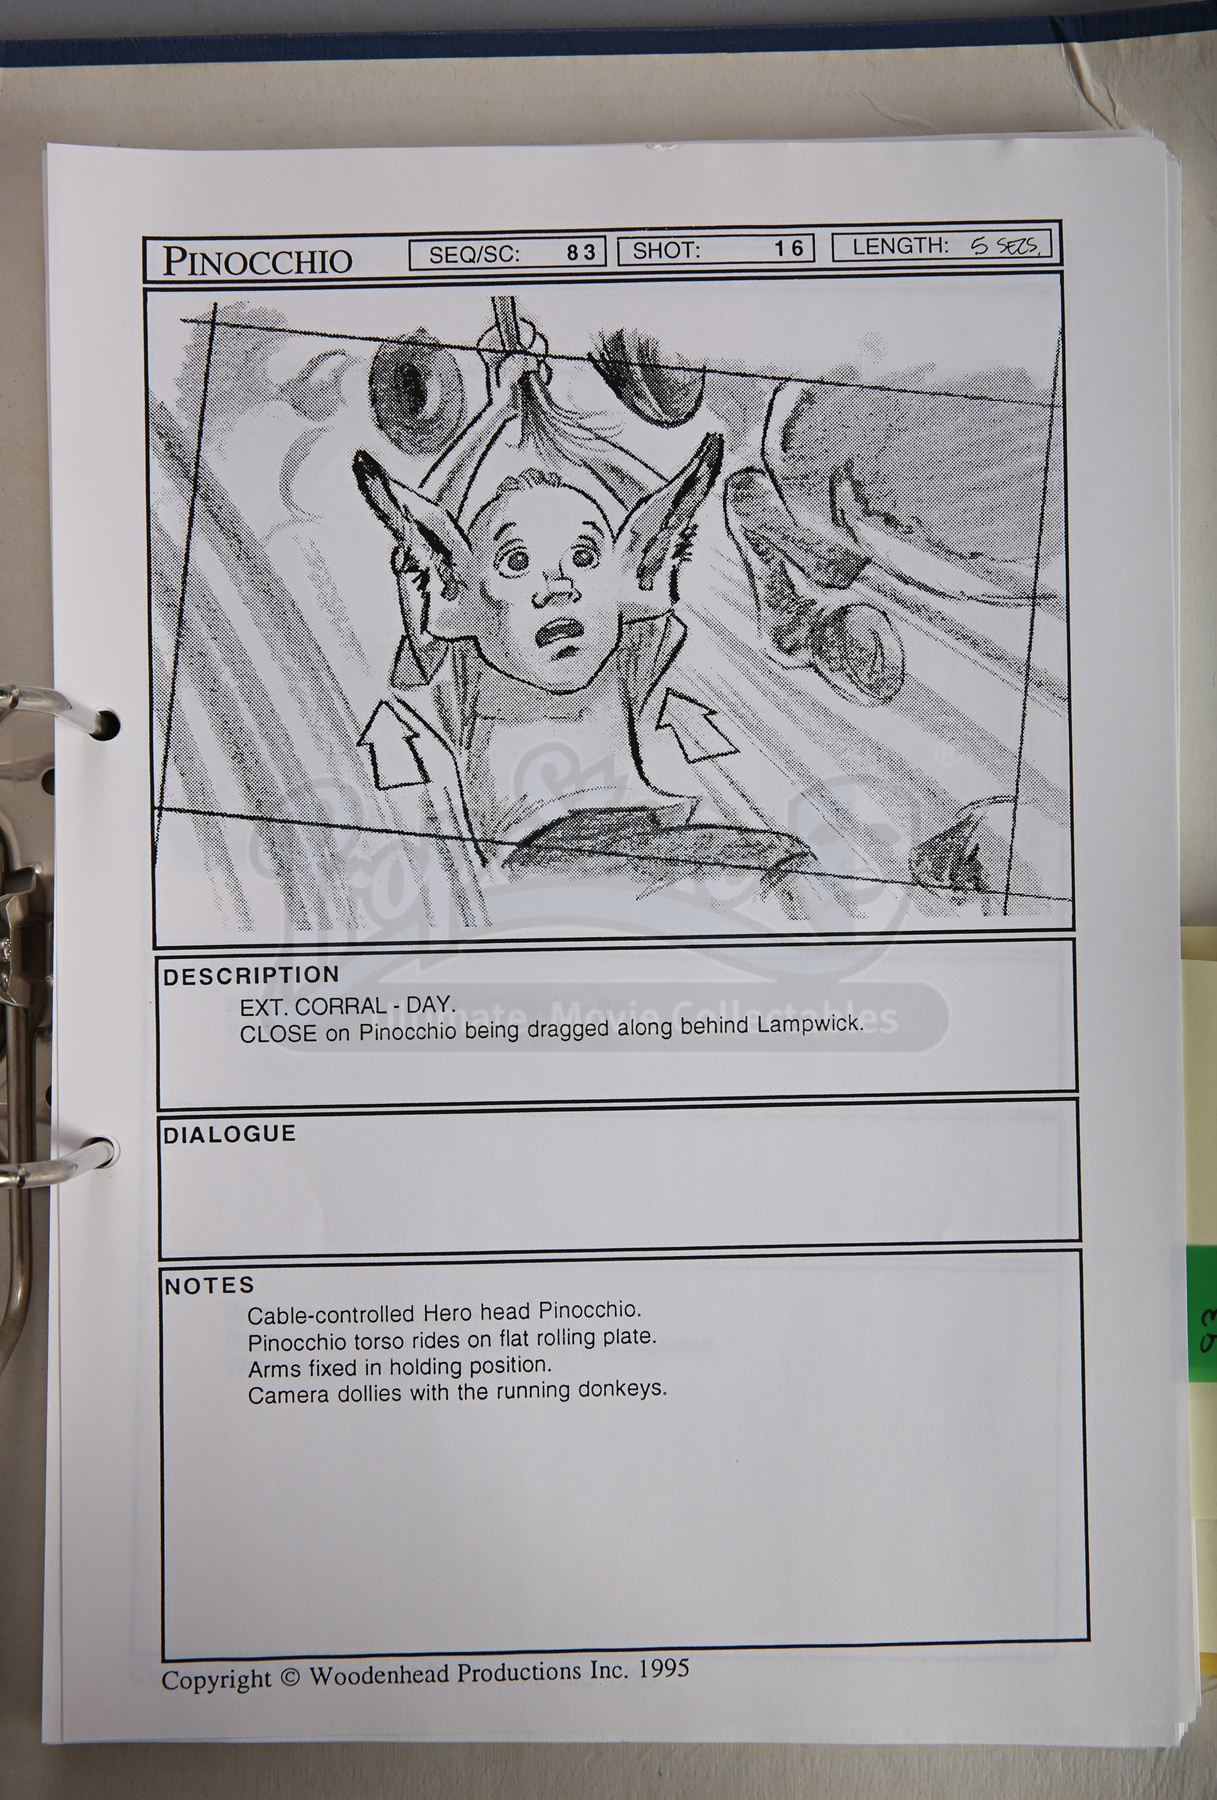 Effectiveness of a storyboard